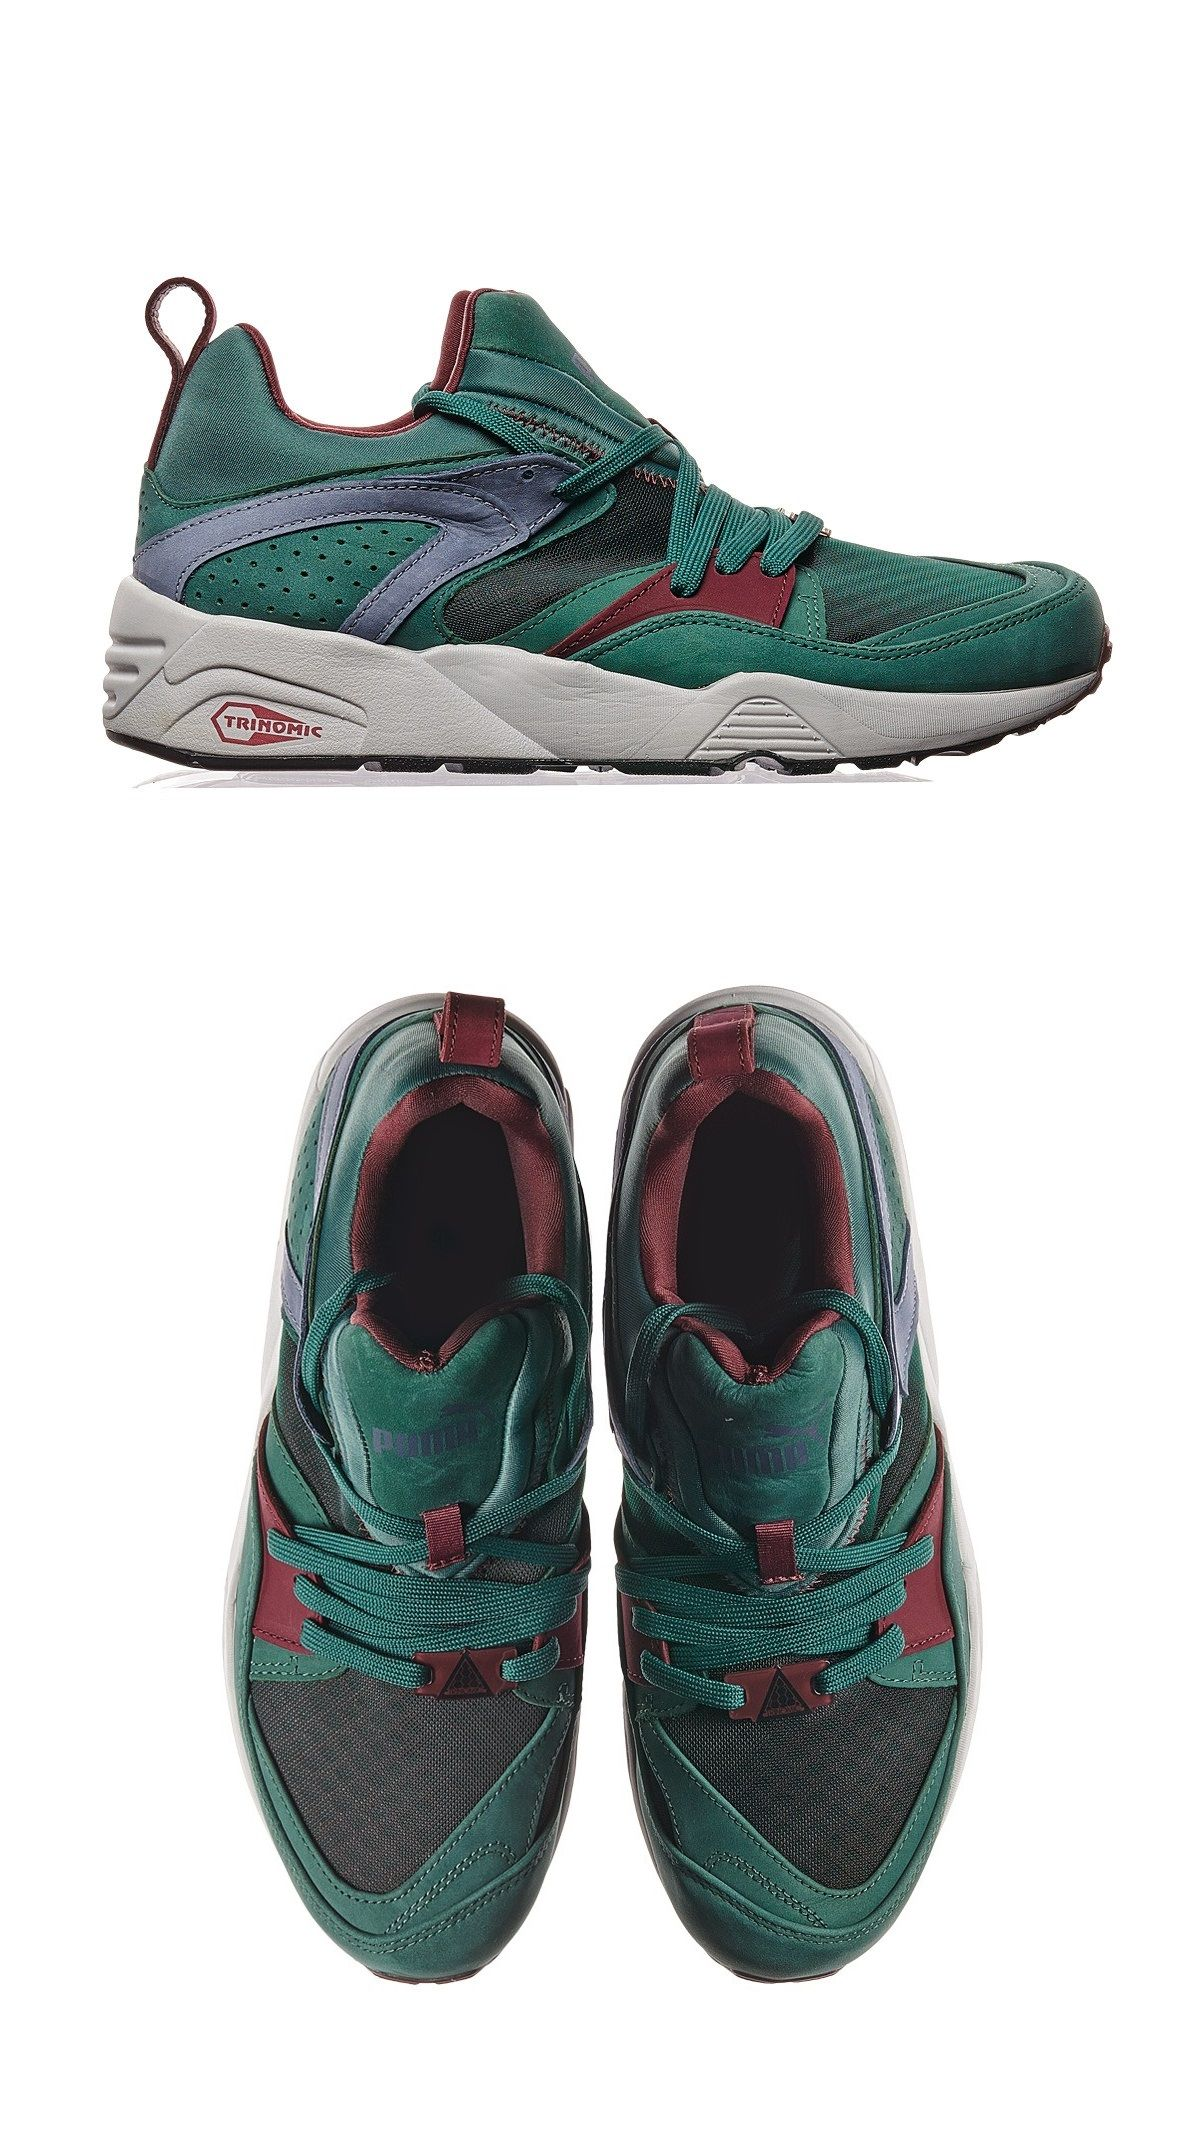 d7076a00594572 Puma Trinomic Blaze Of Glory  Crackle Pack   Green Adidas Shoes Outlet